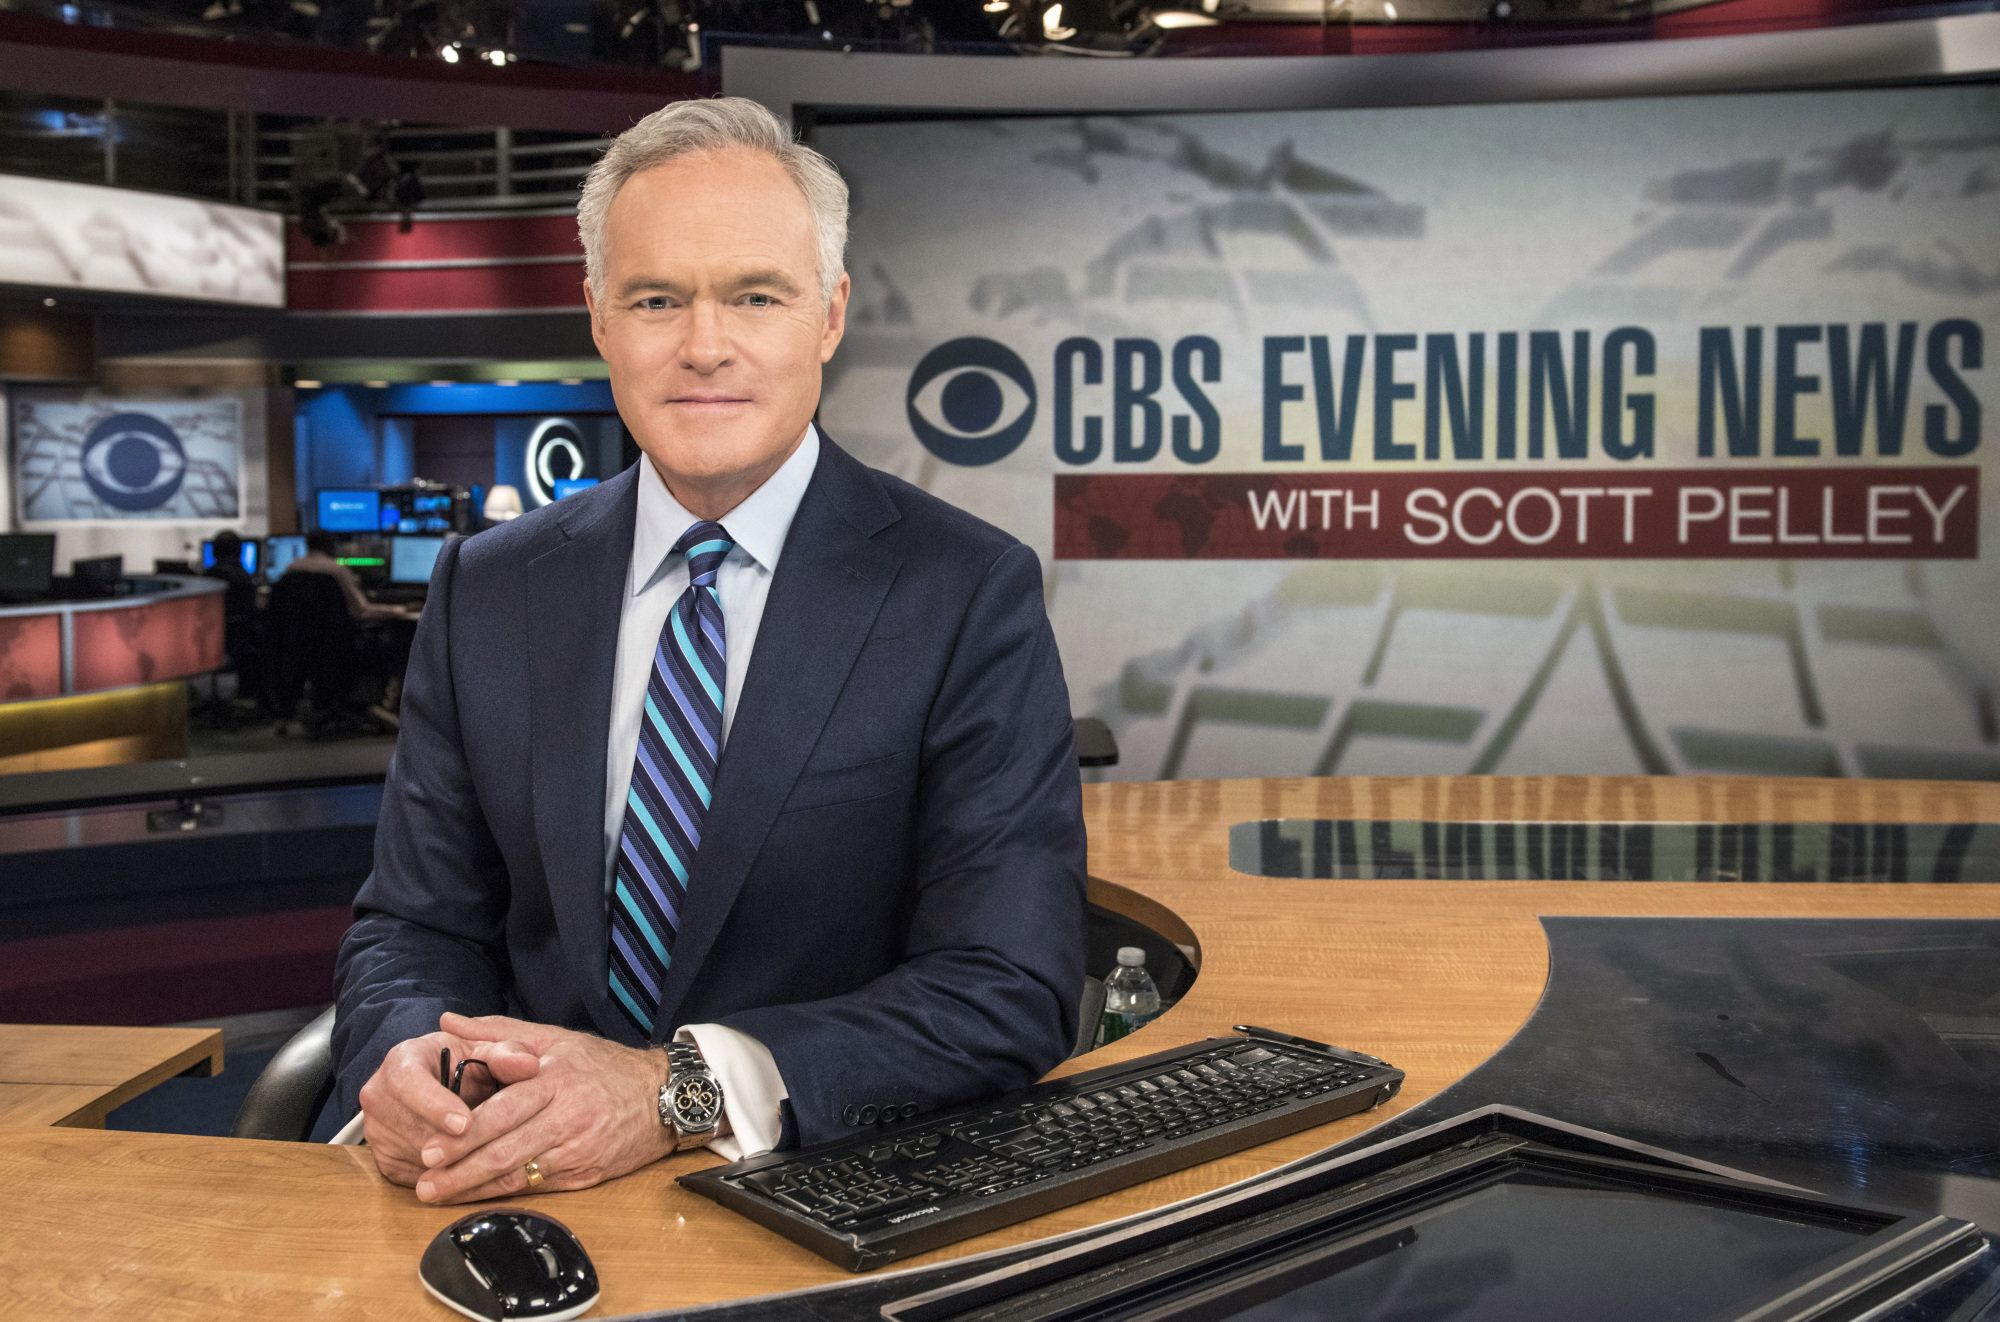 NEW YORK - MARCH 23: CBS  Evening News with Scott Pelley nears its fifth anniversary on air.  (Photo by John Paul Filo/CBS via Getty Images)